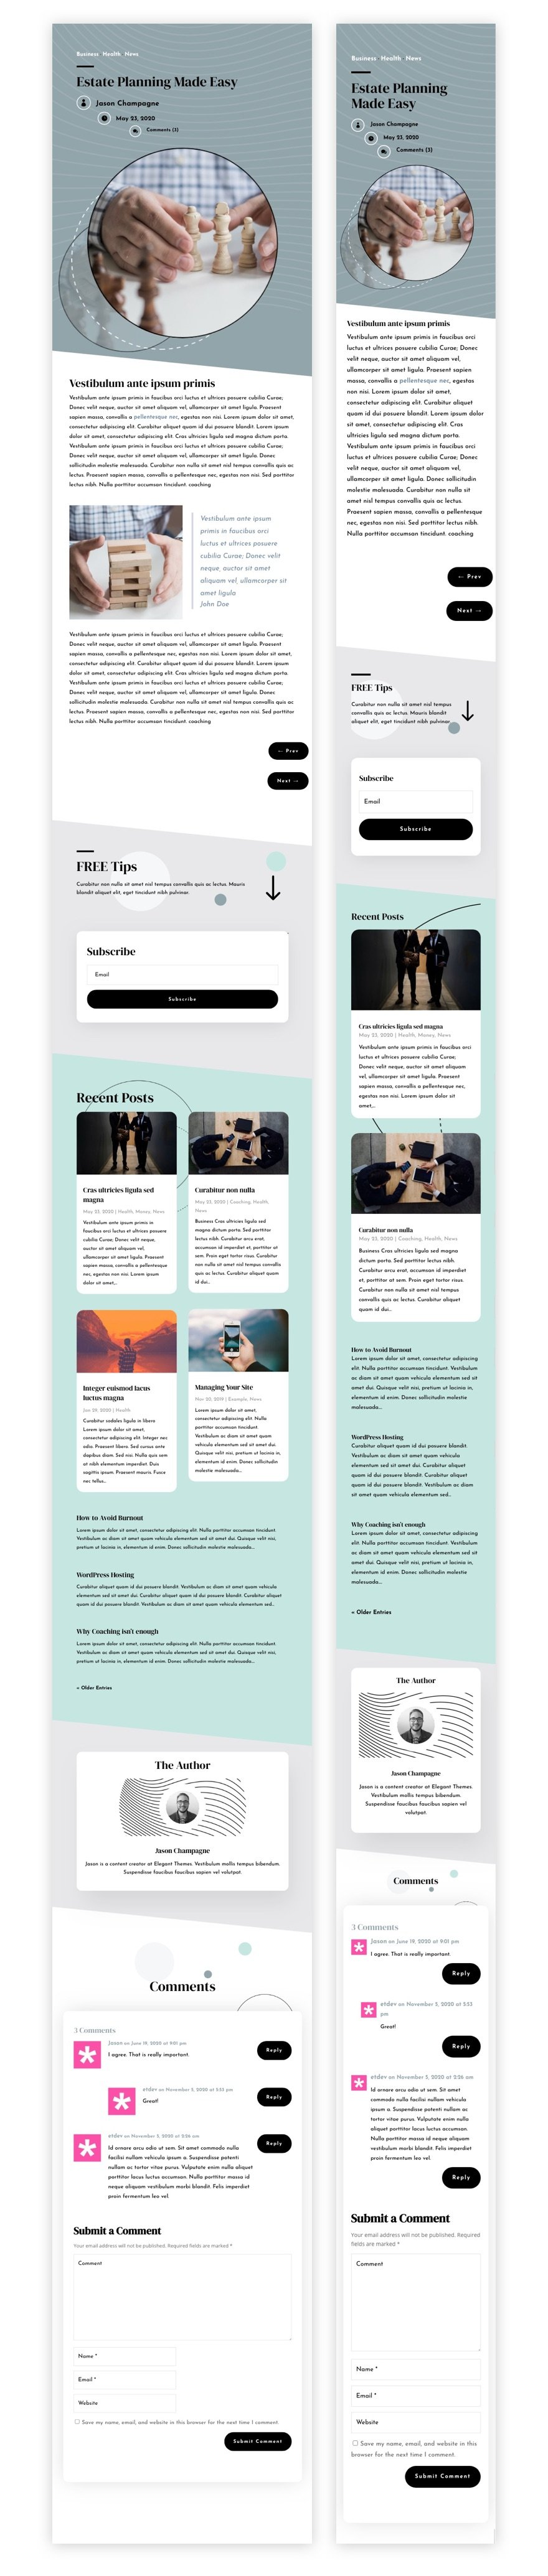 blog post template for Divi's Estate Planning Layout Pack